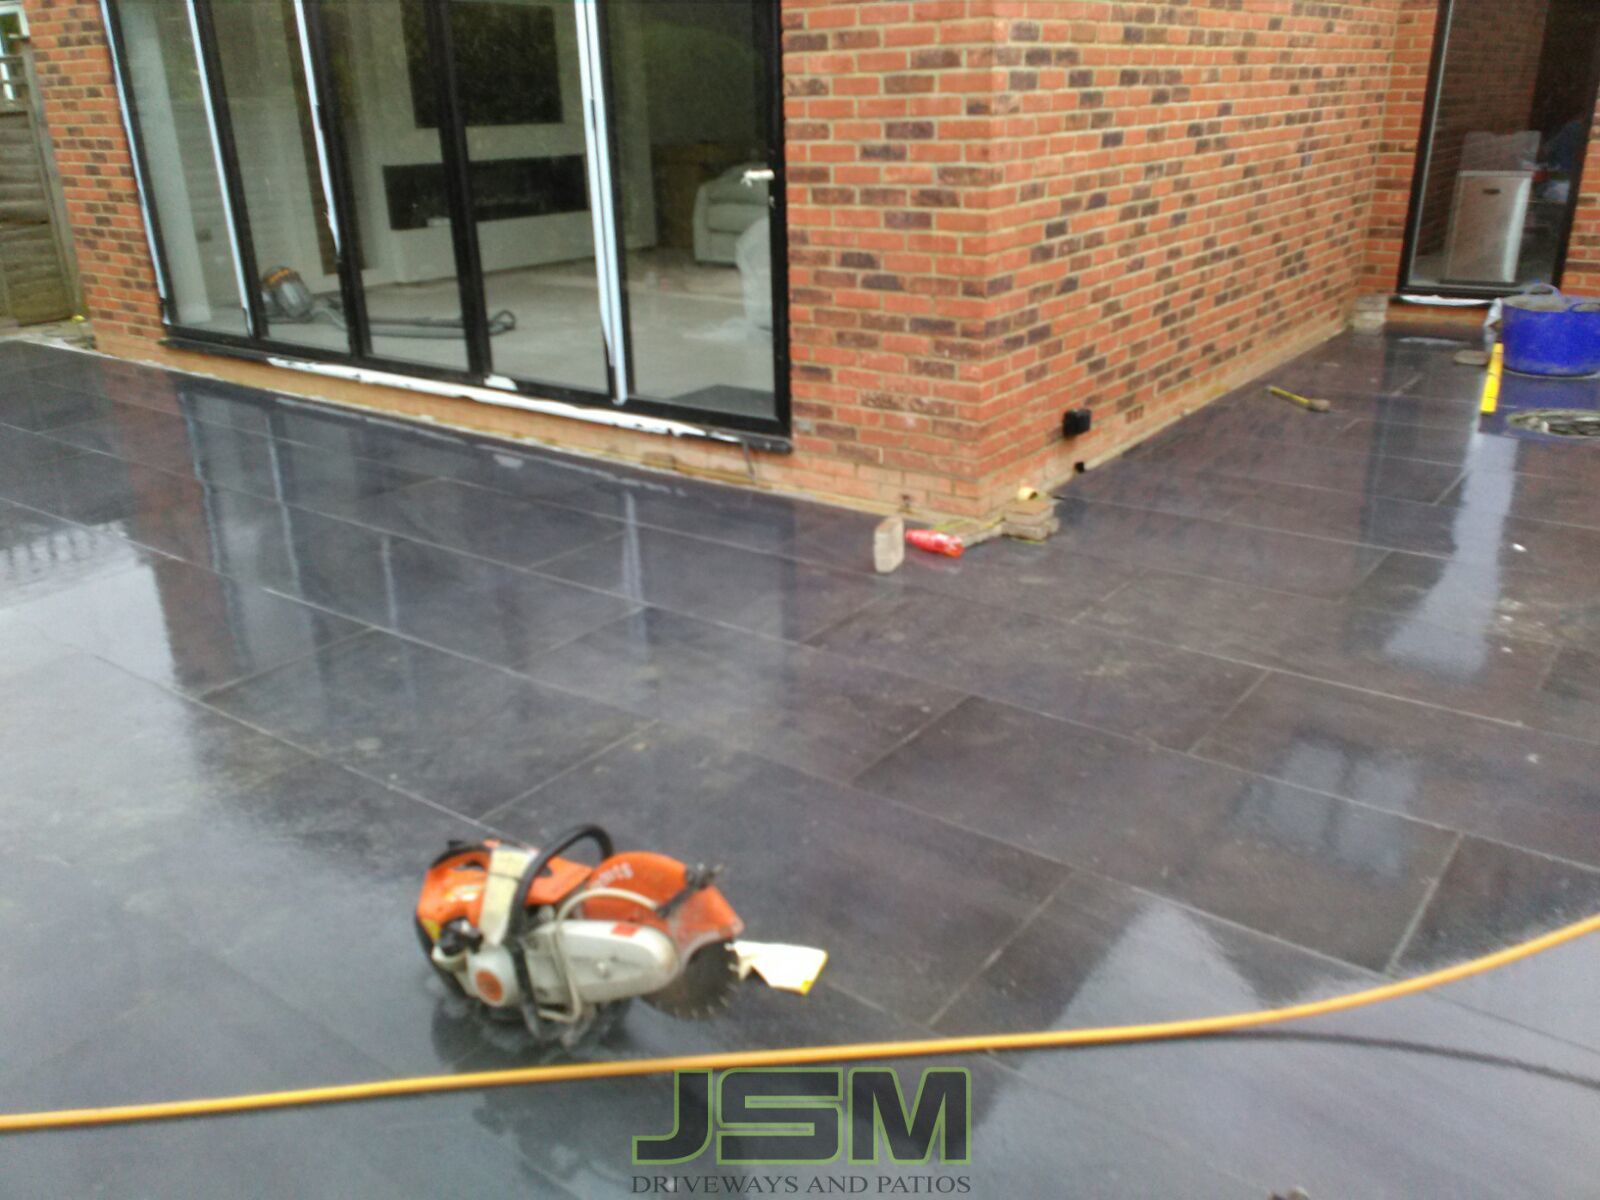 Patio Paving Contractors in Great Brickhill, Milton Keynes